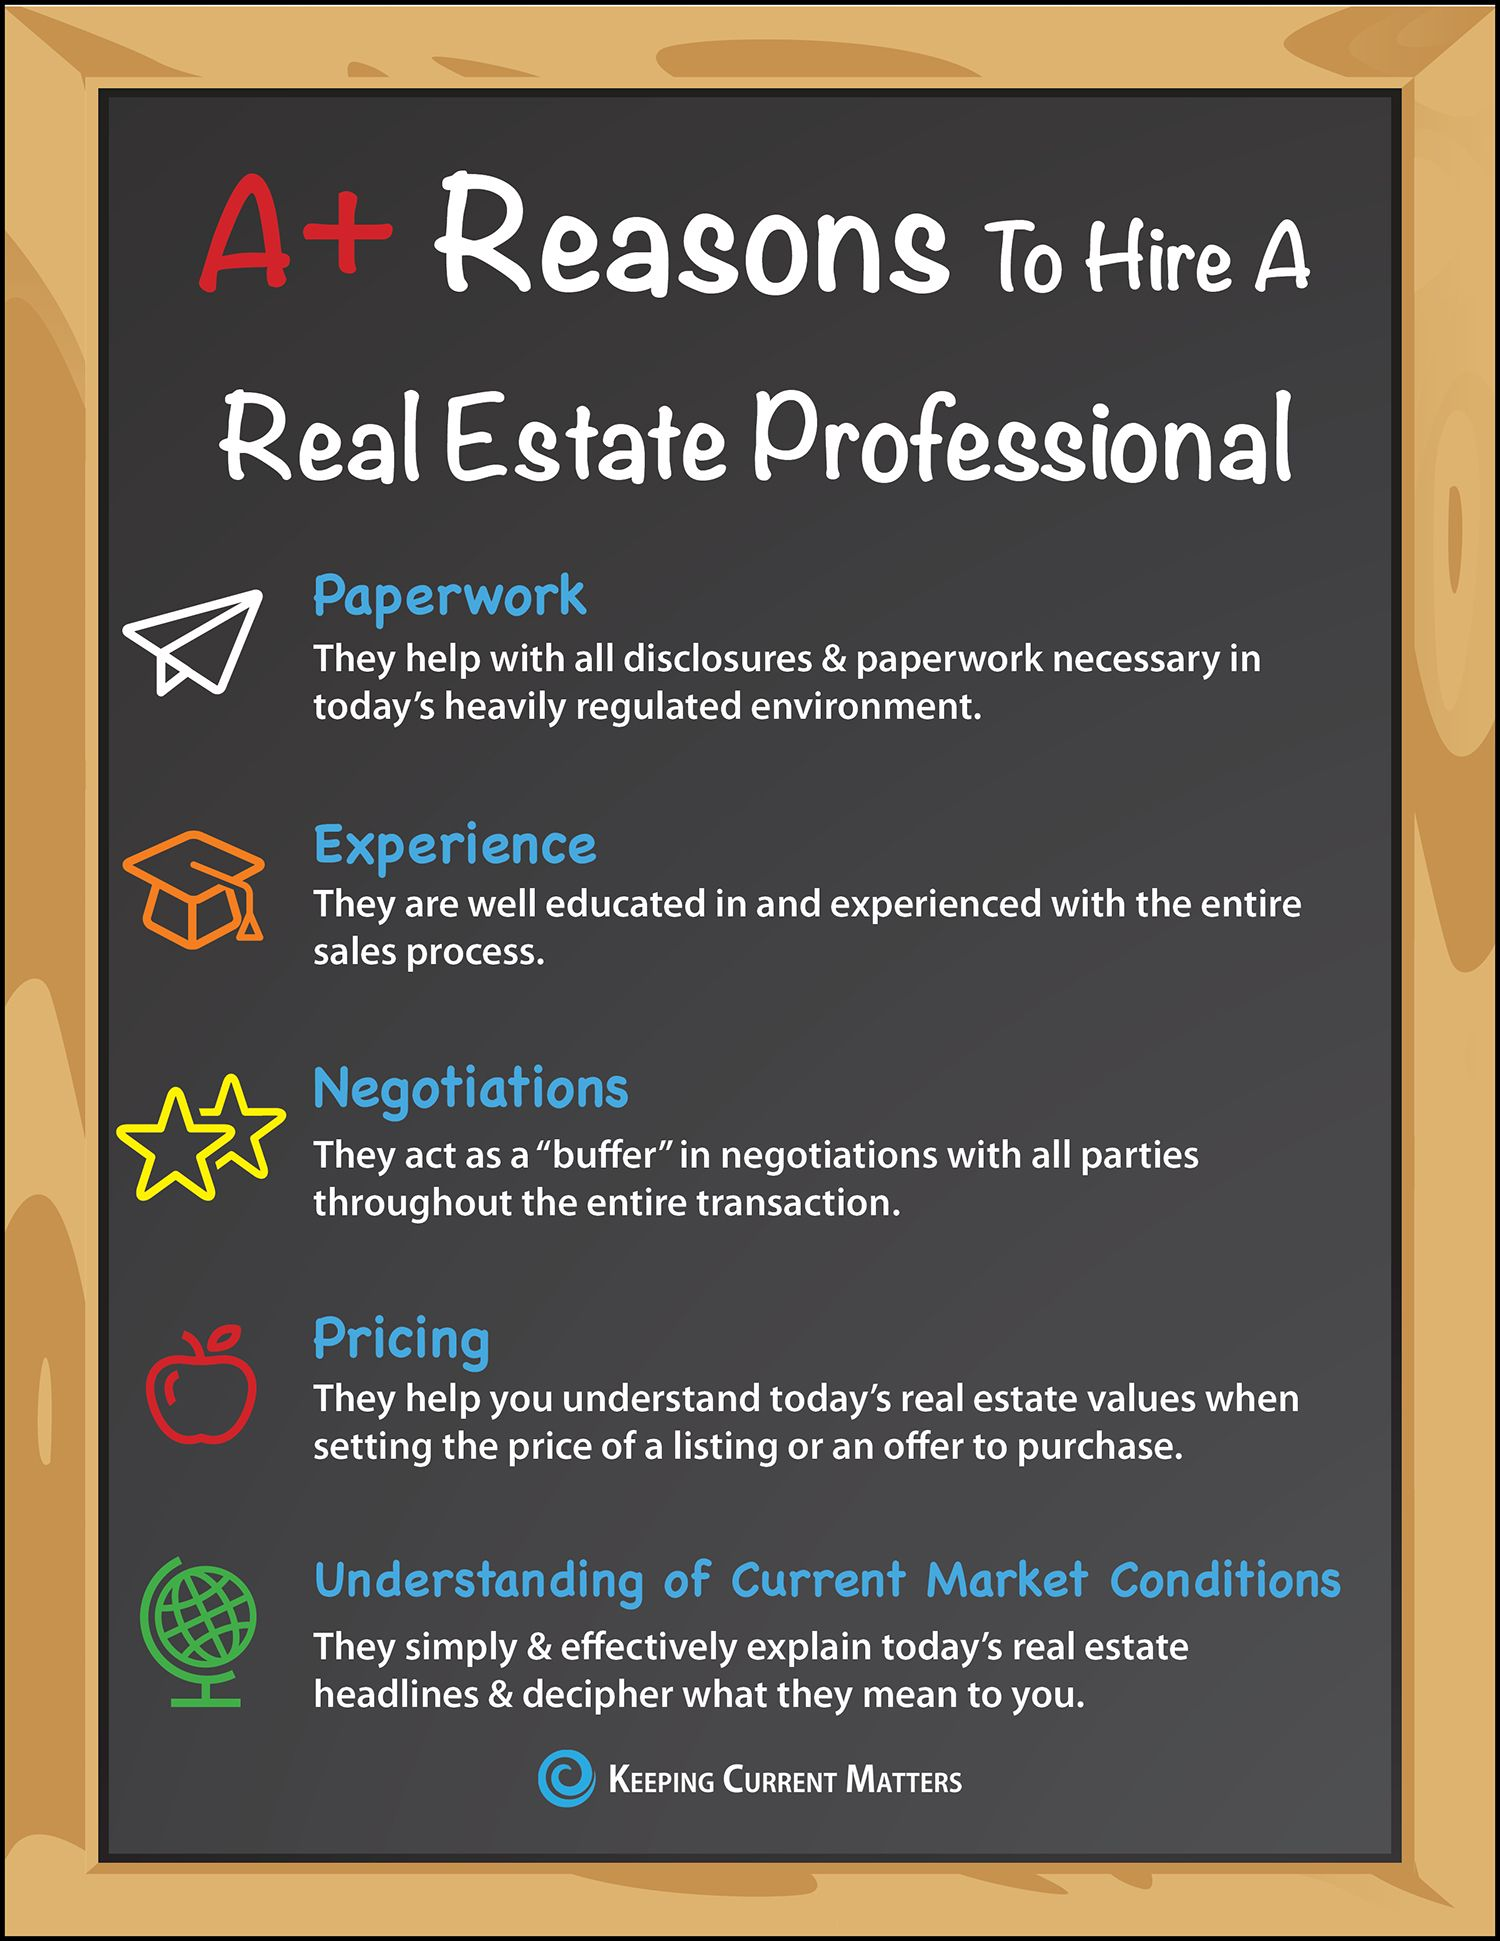 Want To Get An A Hire A Real Estate Pro Infographic Keeping Current Matters Real Estate Infographic Real Estate Advice Real Estate Memes